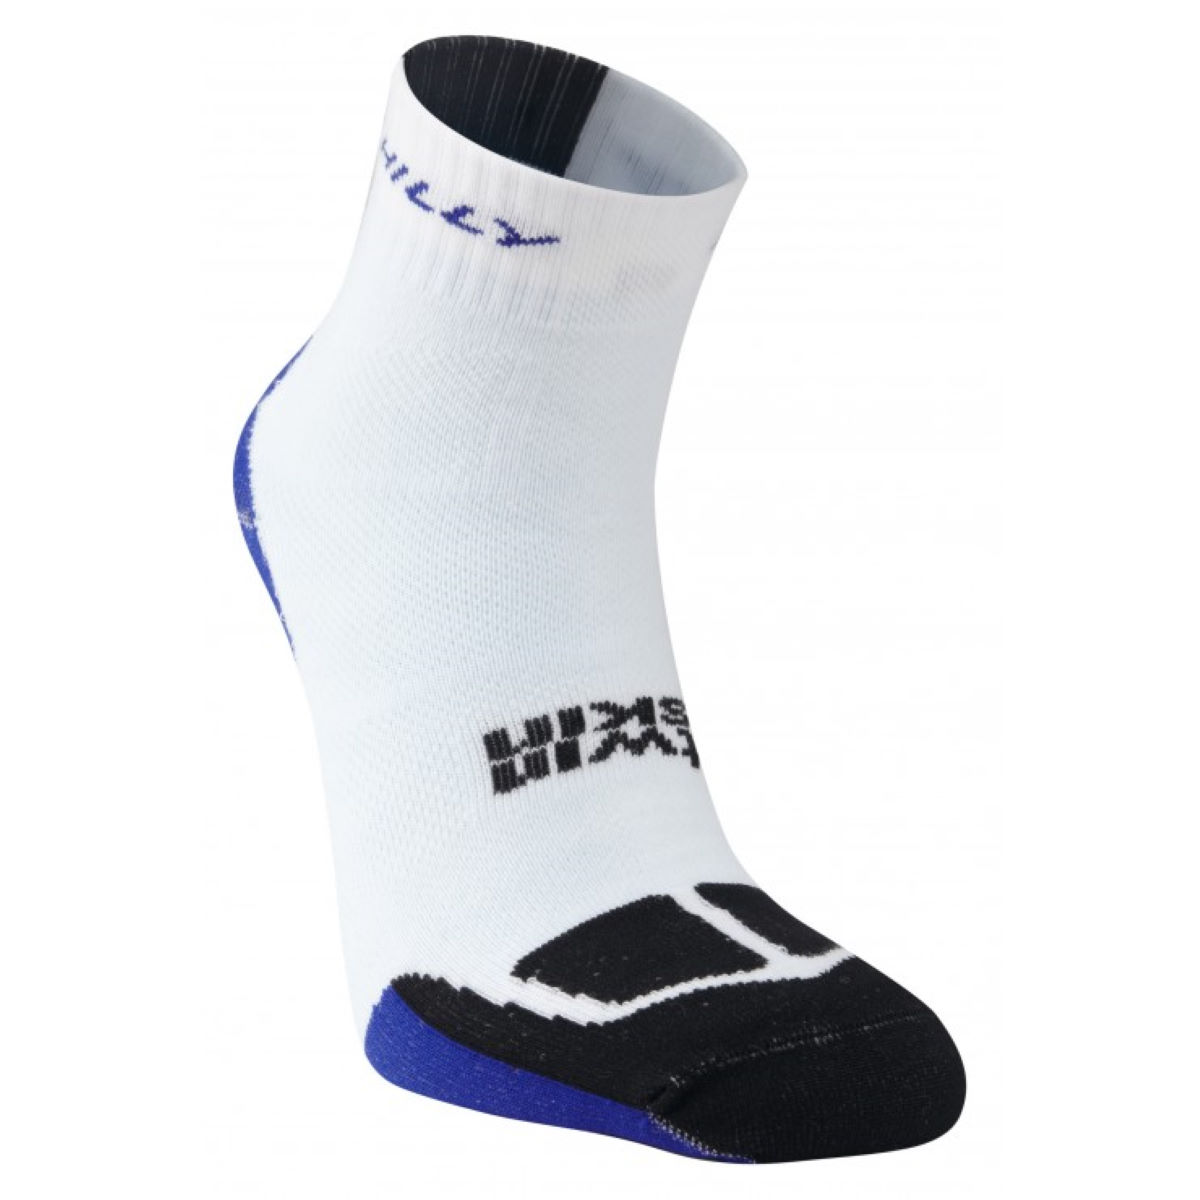 Chaussettes Hilly Twin Skin PE14 - XL White/Blue/Black  Chaussettes